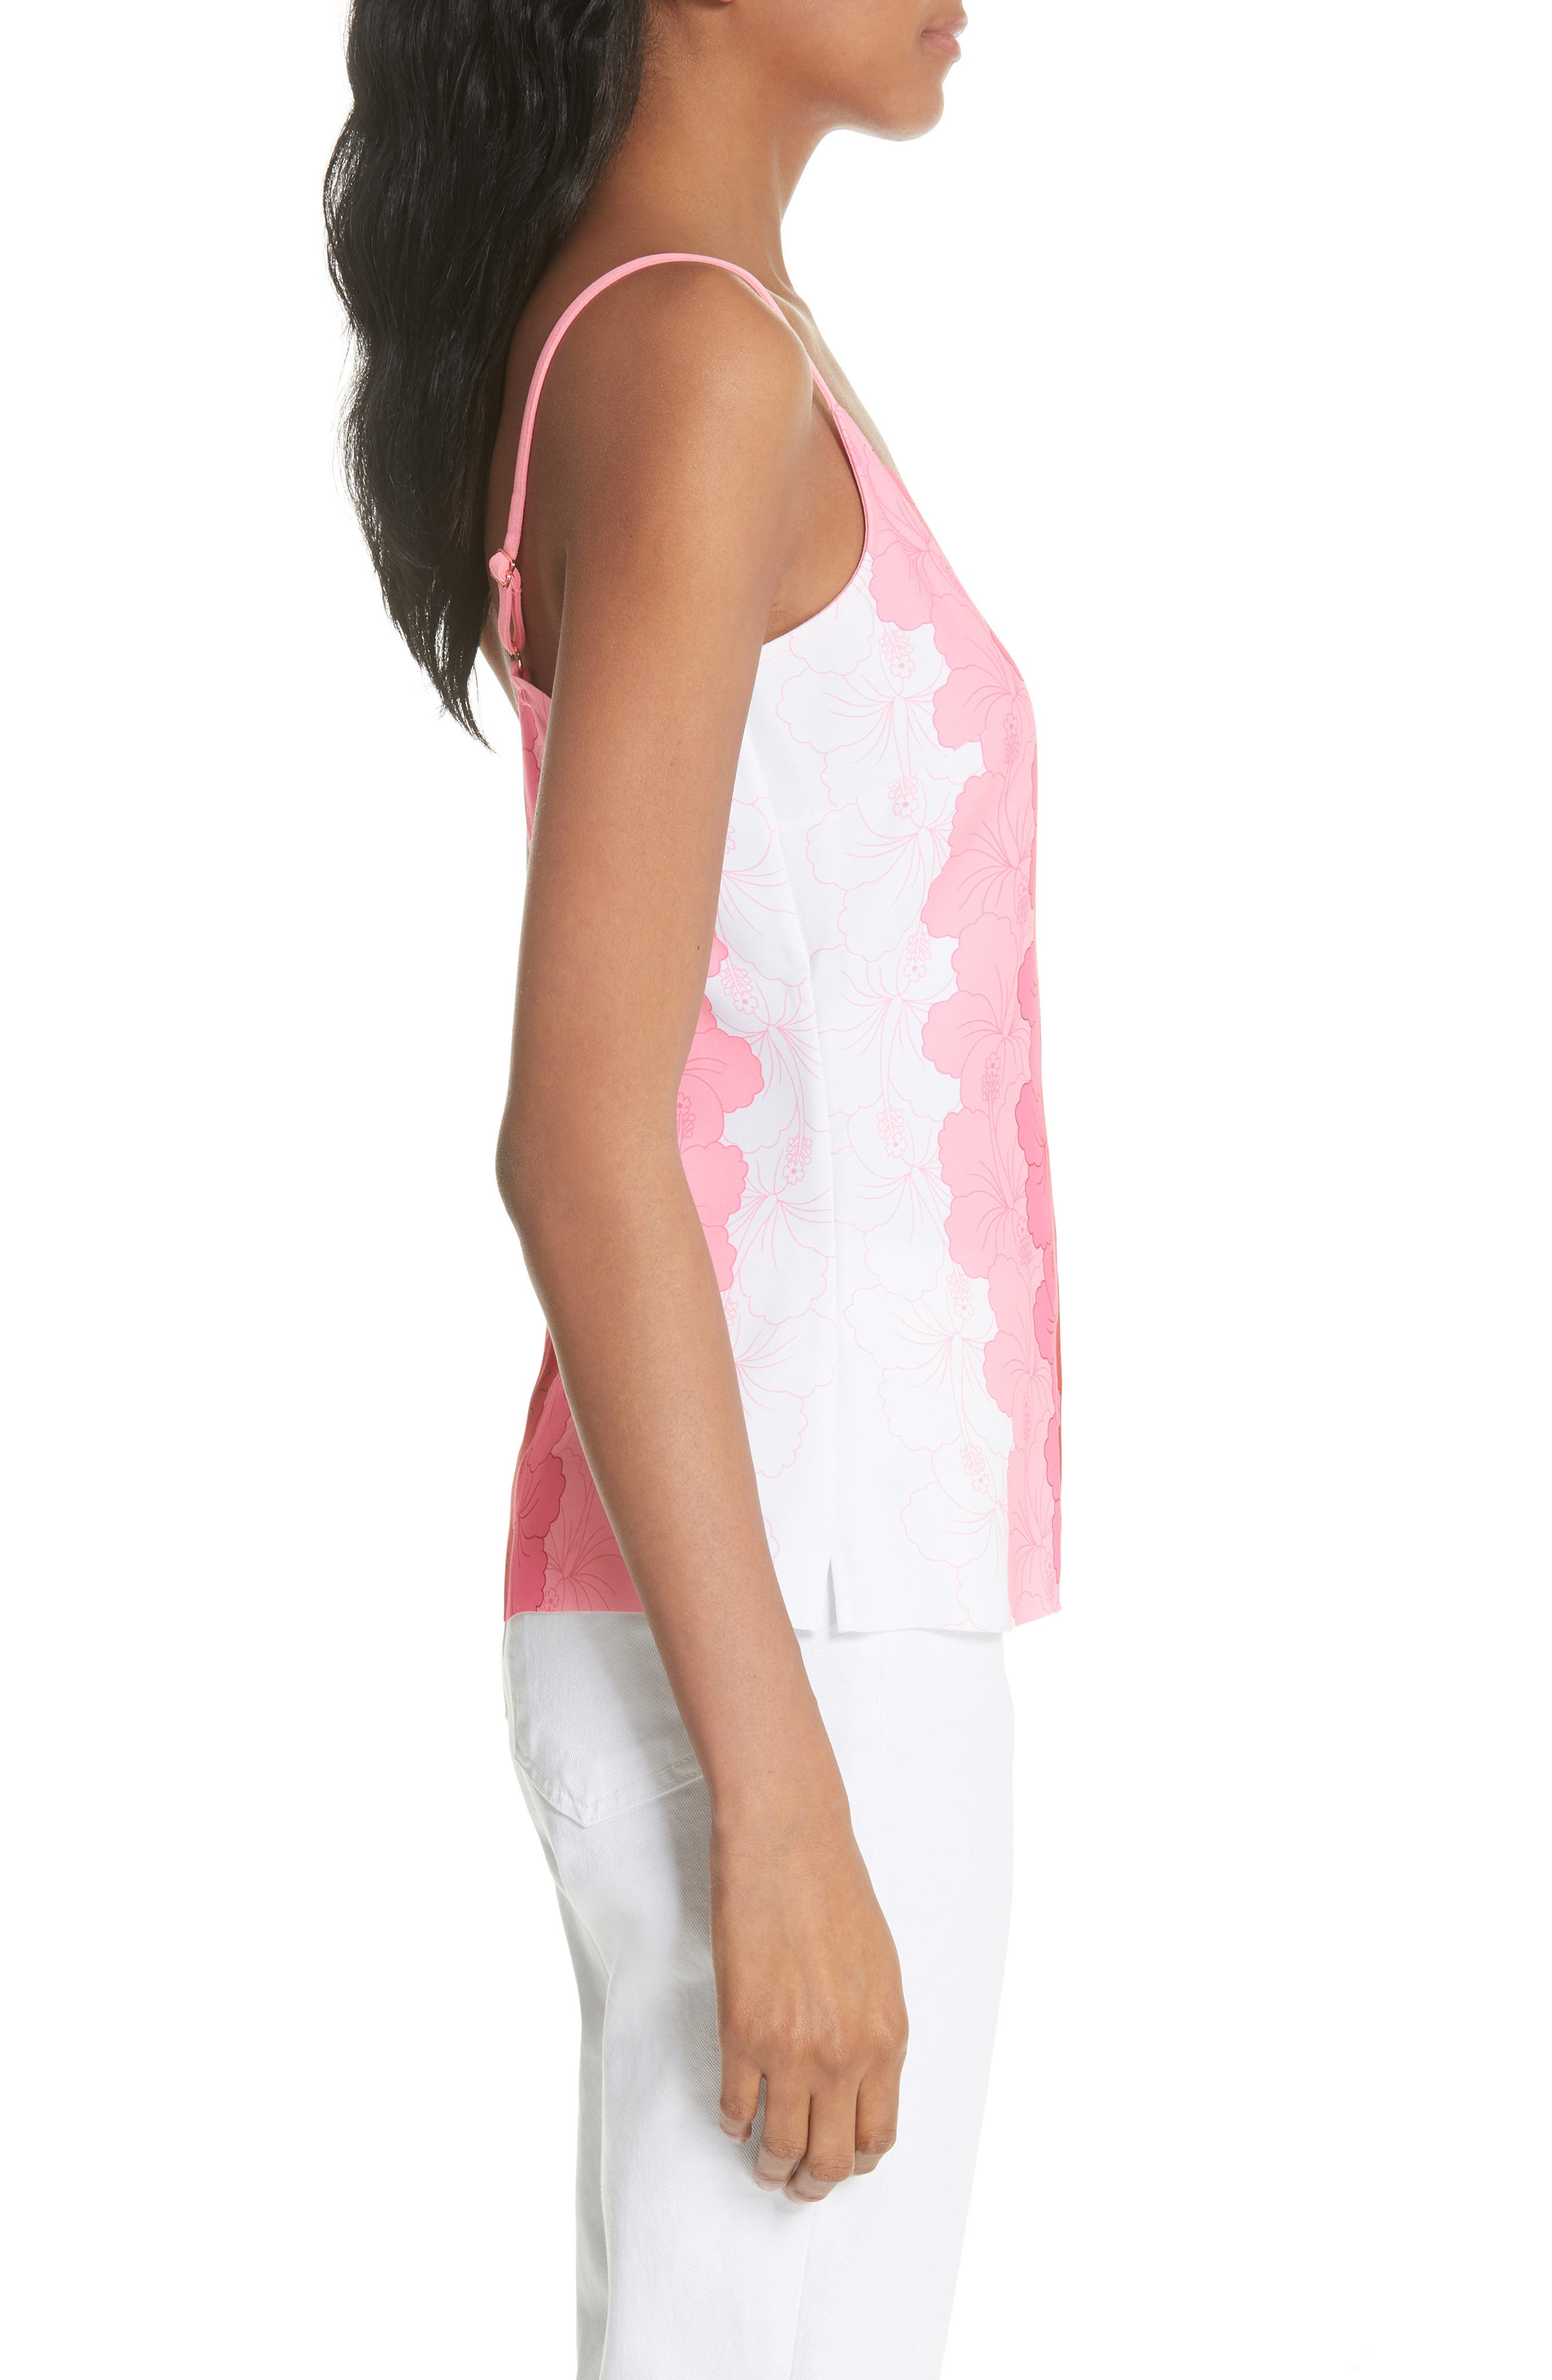 TED BAKER LONDON,                             Romaa Happiness Camisole,                             Alternate thumbnail 3, color,                             671